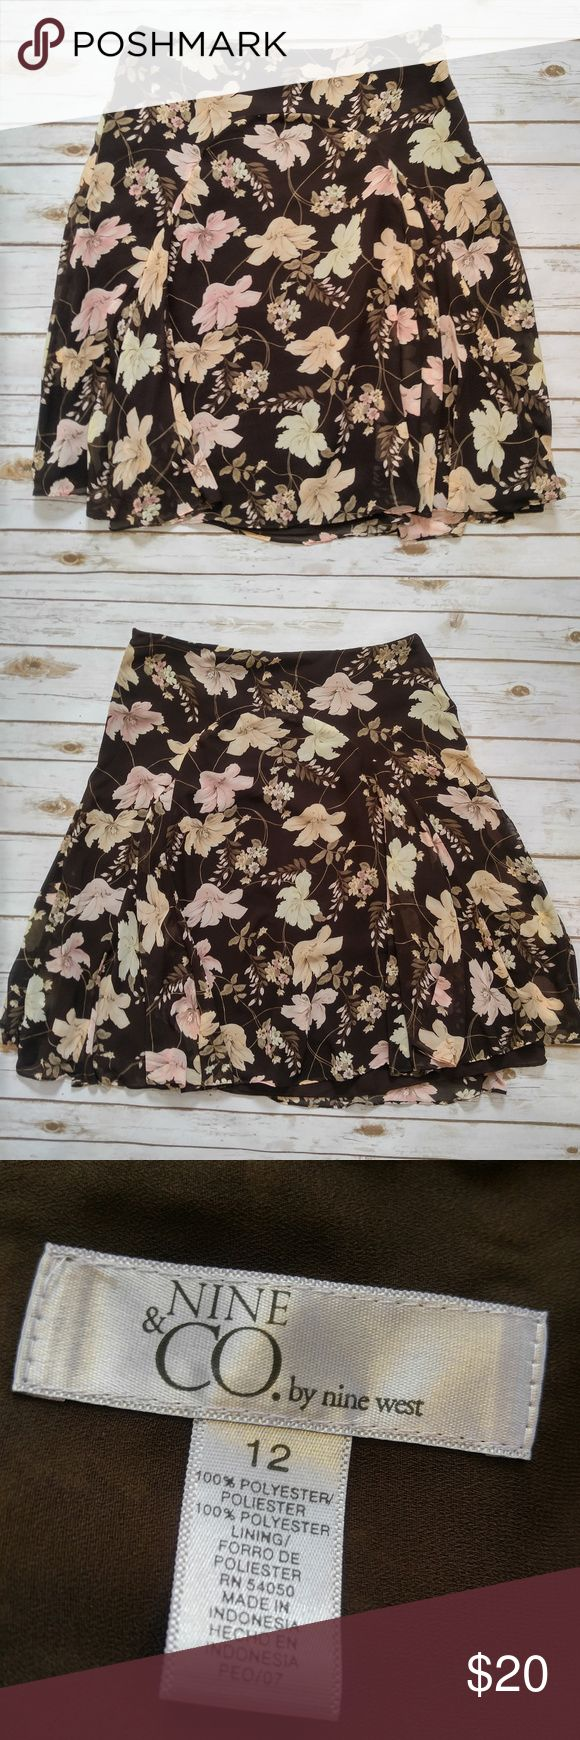 Nine West Brown Floral Chiffon Knee Length Skirt Nine West Brown Floral Knee Length Skirt Size 12 in good used condition. Please feel free to ask any questions or bundle with other listings in my closet for a custom discount on your order. I ship the same day as long as the order is placed before 11:00 AM Central time. If you would like to be notified about price drops remember to 'like' the item to bookmark it! Thank you for checking out my closet and happy poshing! Nine West Skirts Midi